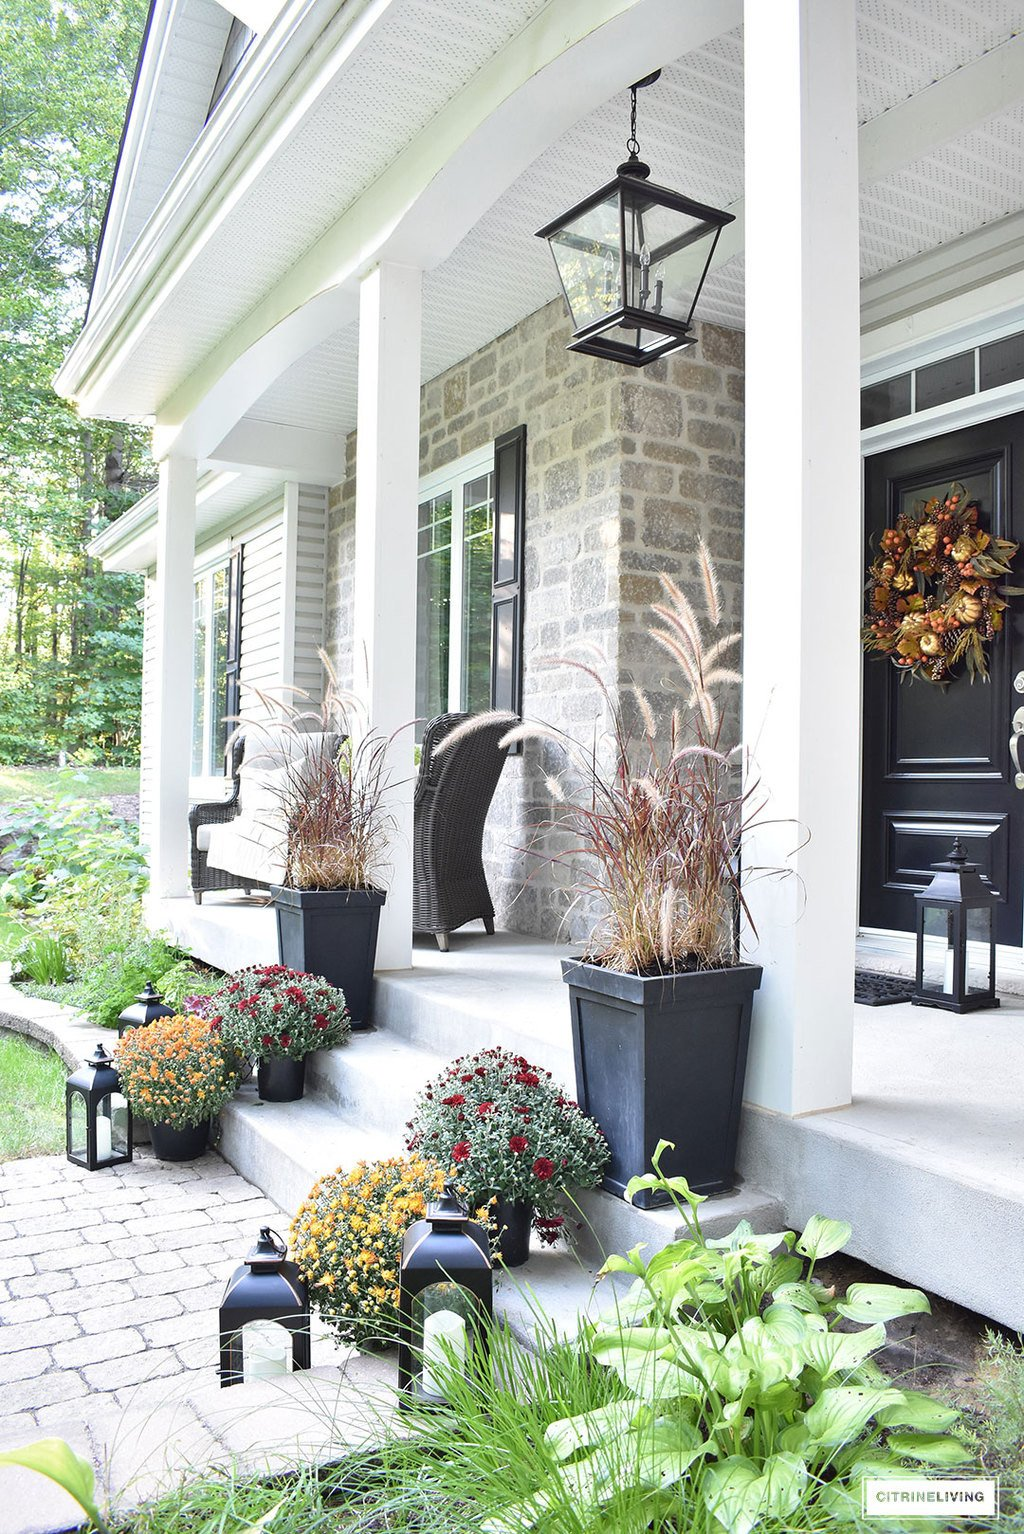 Decor Ideas for Front Porch New An Elegant Front Porch Decorated for Fall